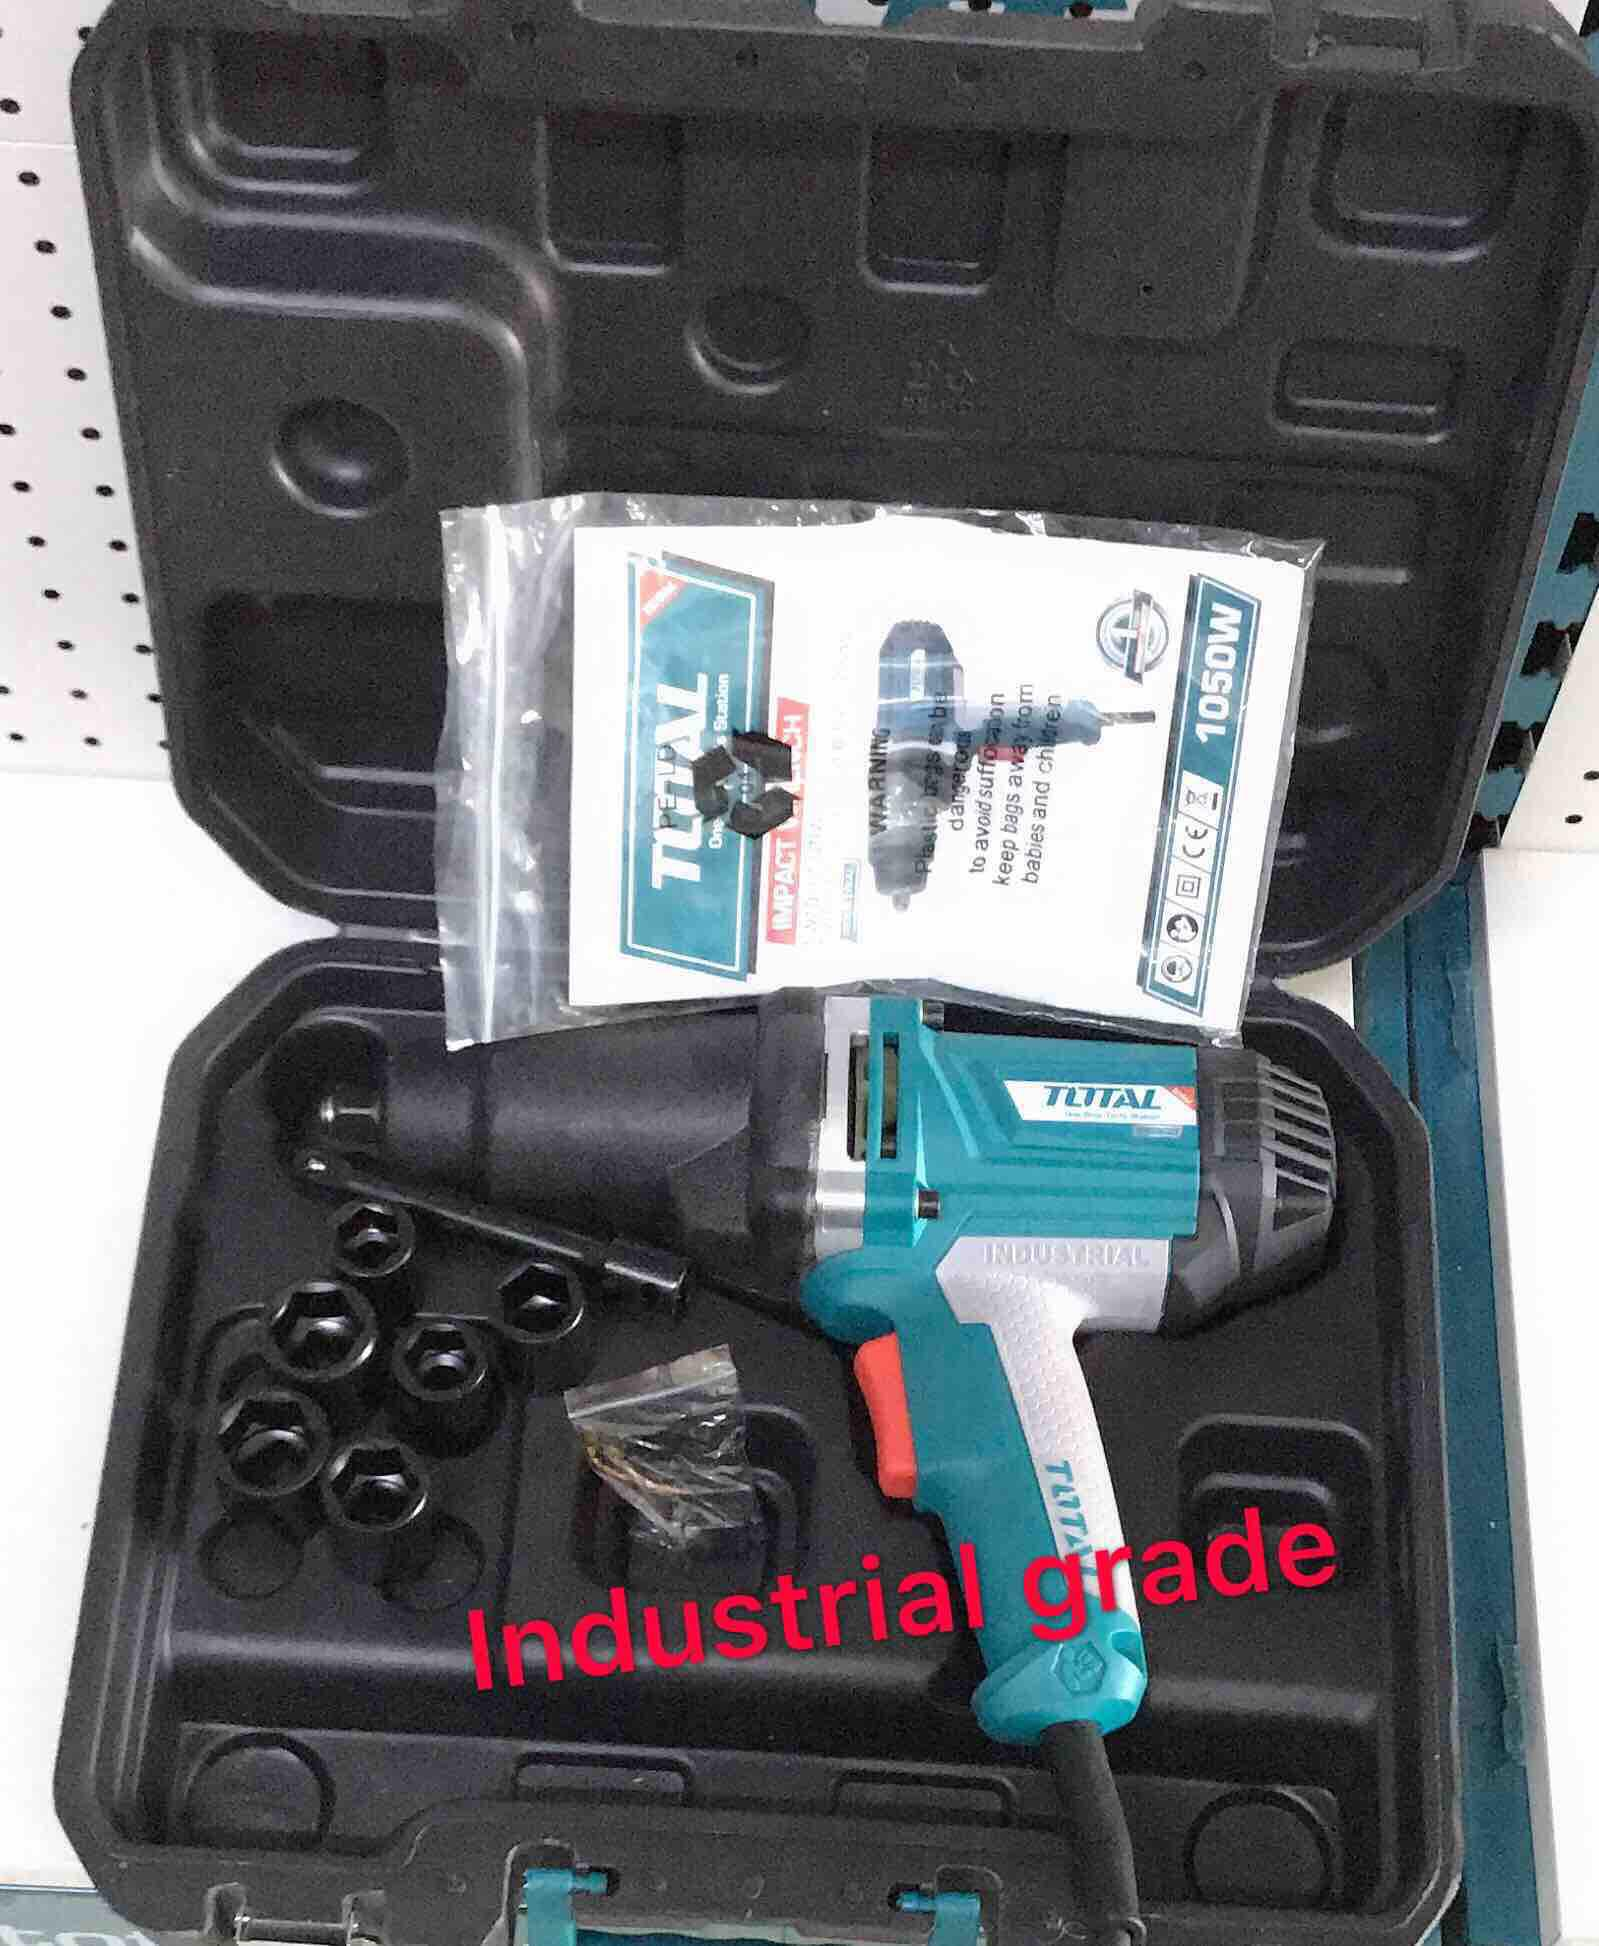 Total Impact Wrench 1050w Industrial Supplies Tiw10101 By Total Tools Davao.